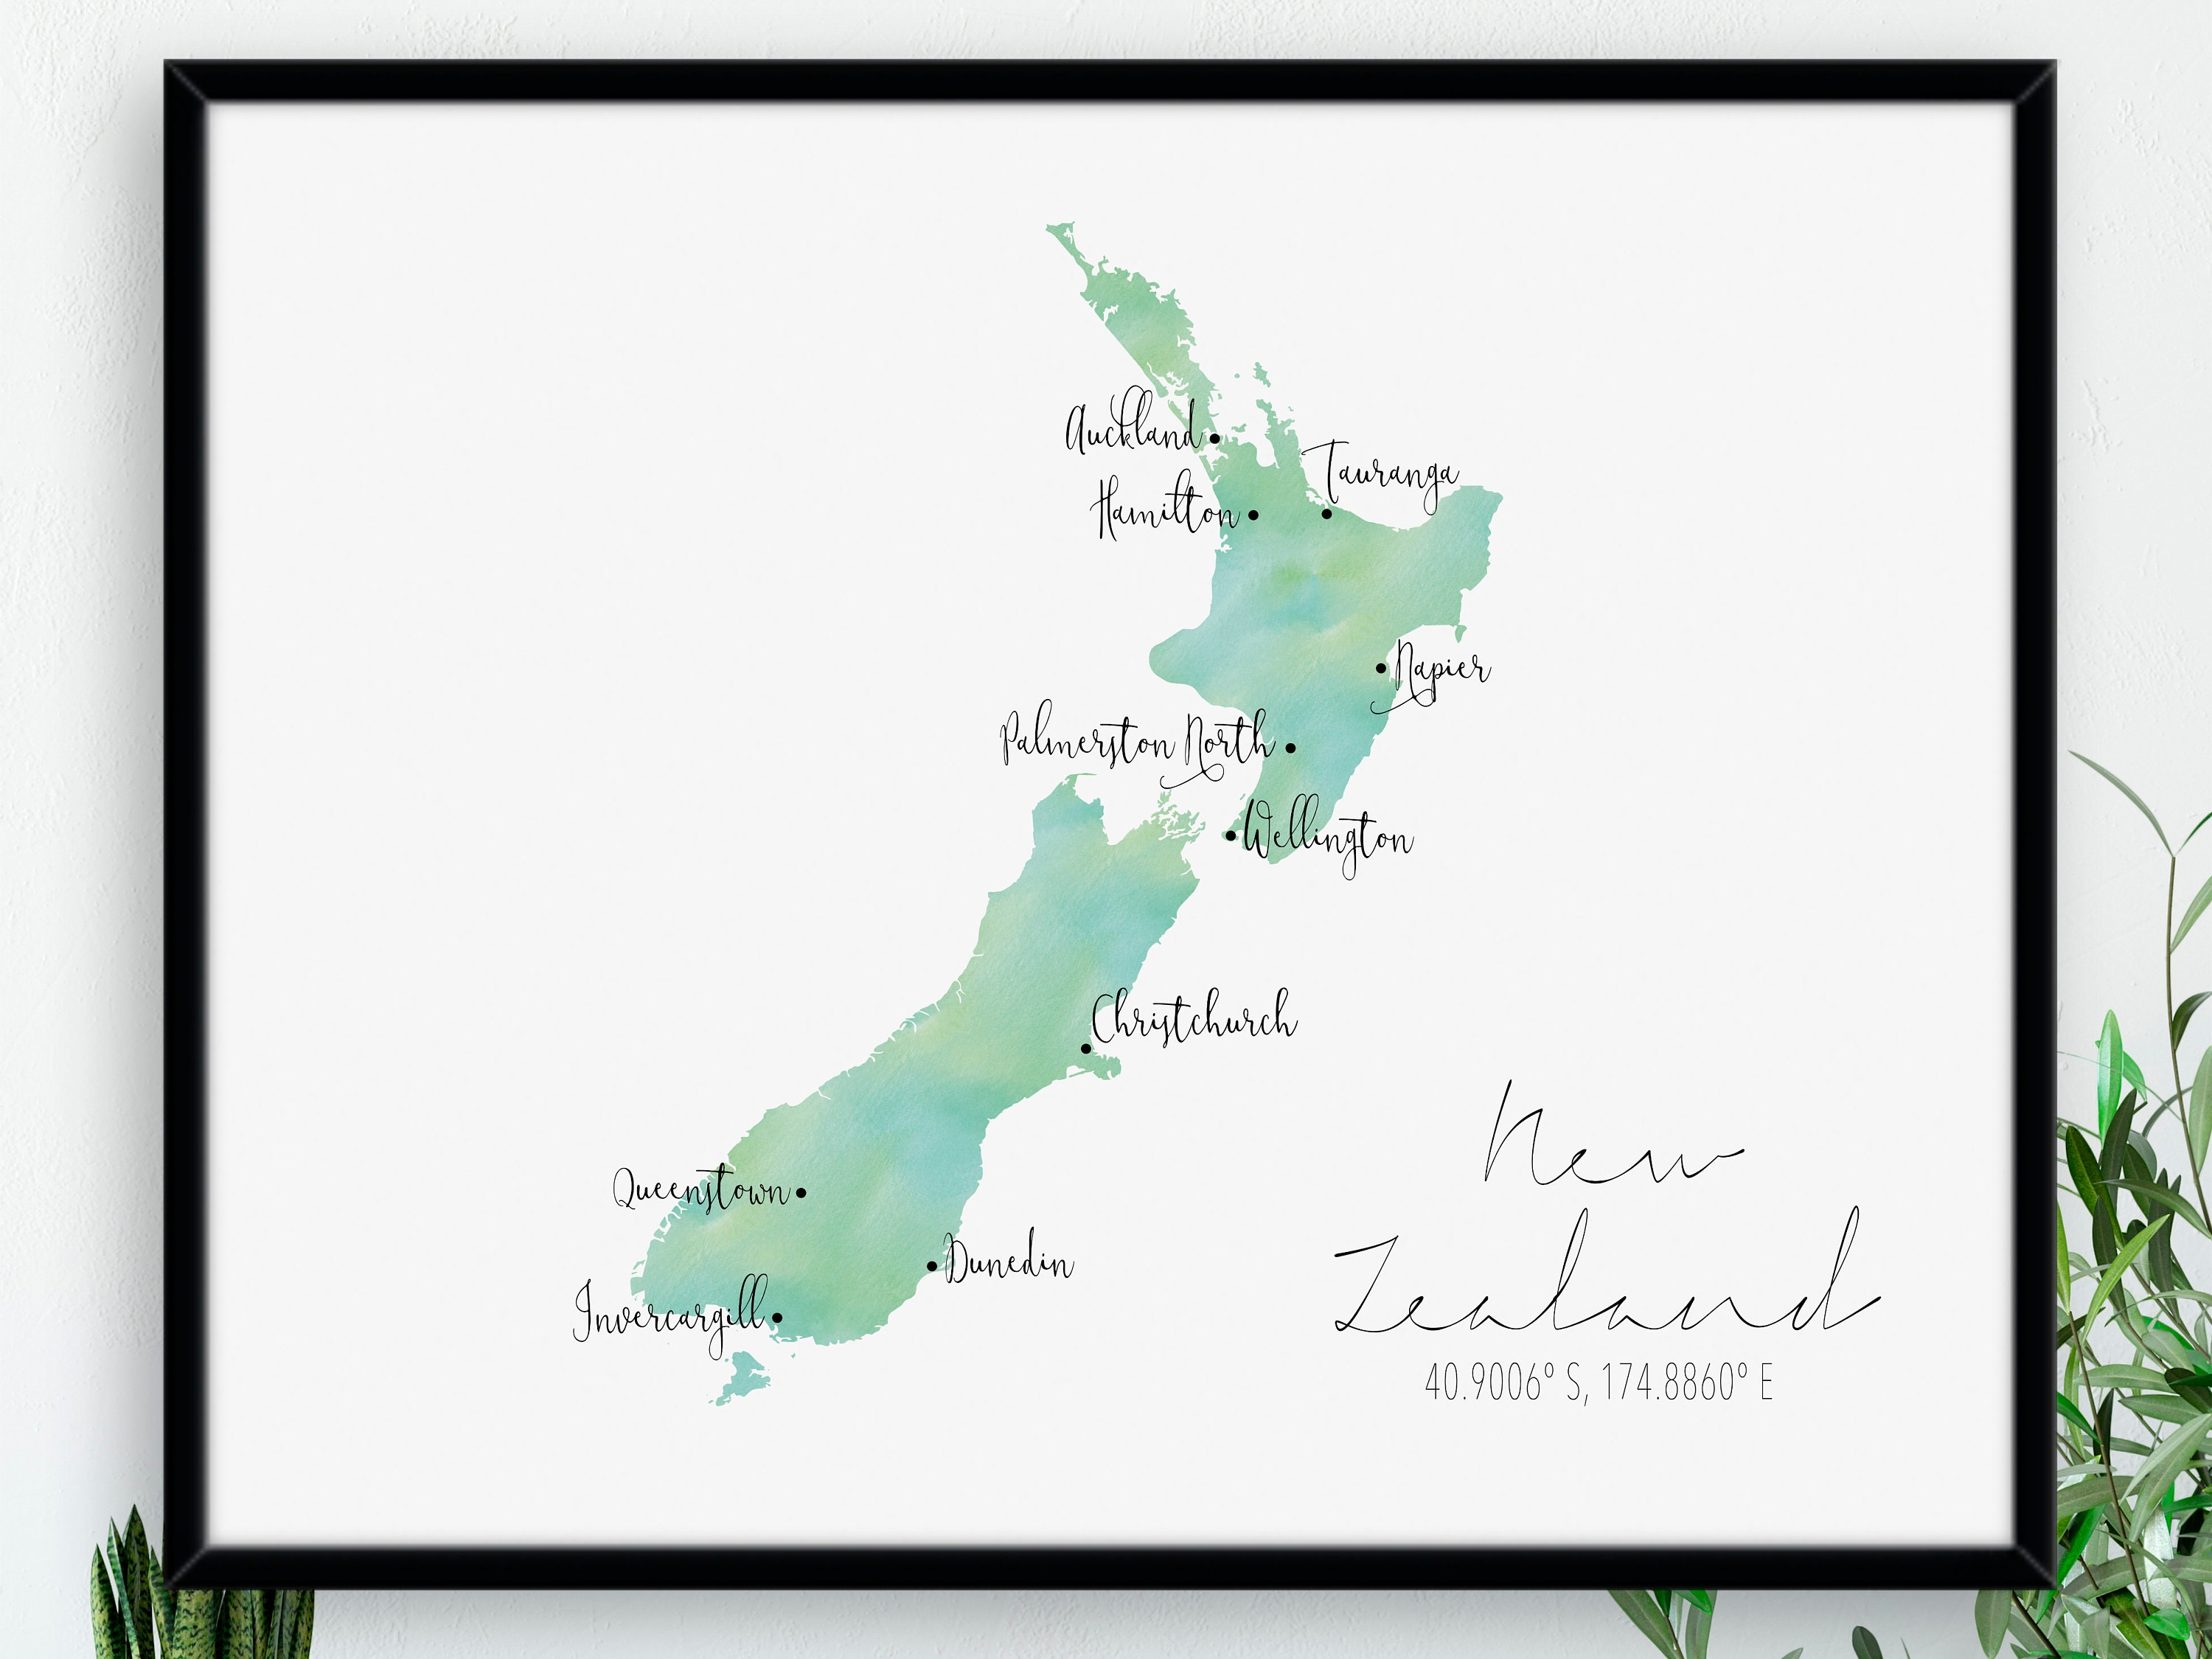 Vanuatu Map Square  Labelled Watercolour  Digital or Printed Wall Art  Large Map Poster  Gift Idea  Giclee Print  Home Decor